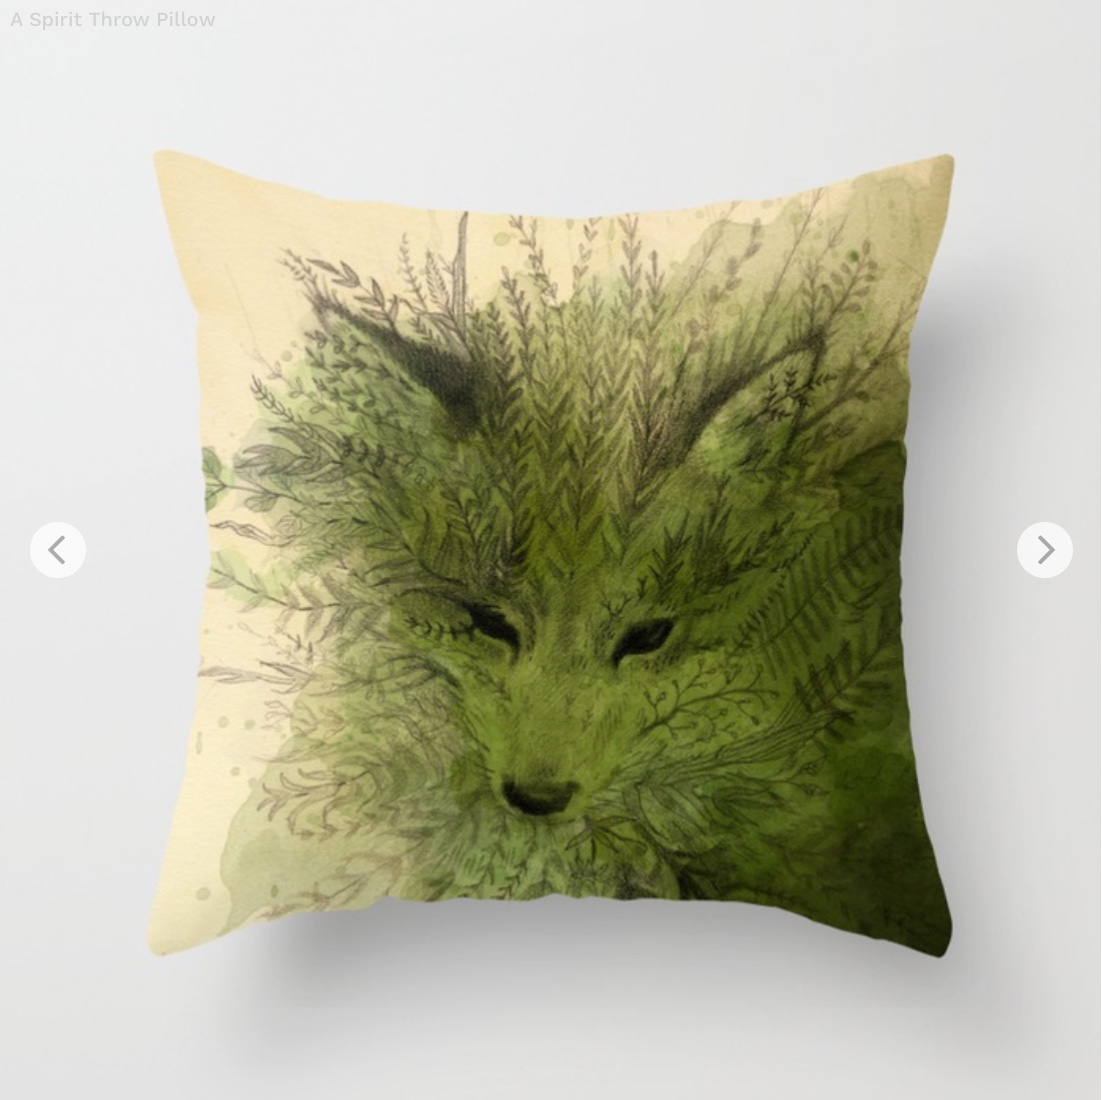 A Spirit Throw Pillow by leslieevans   Society6